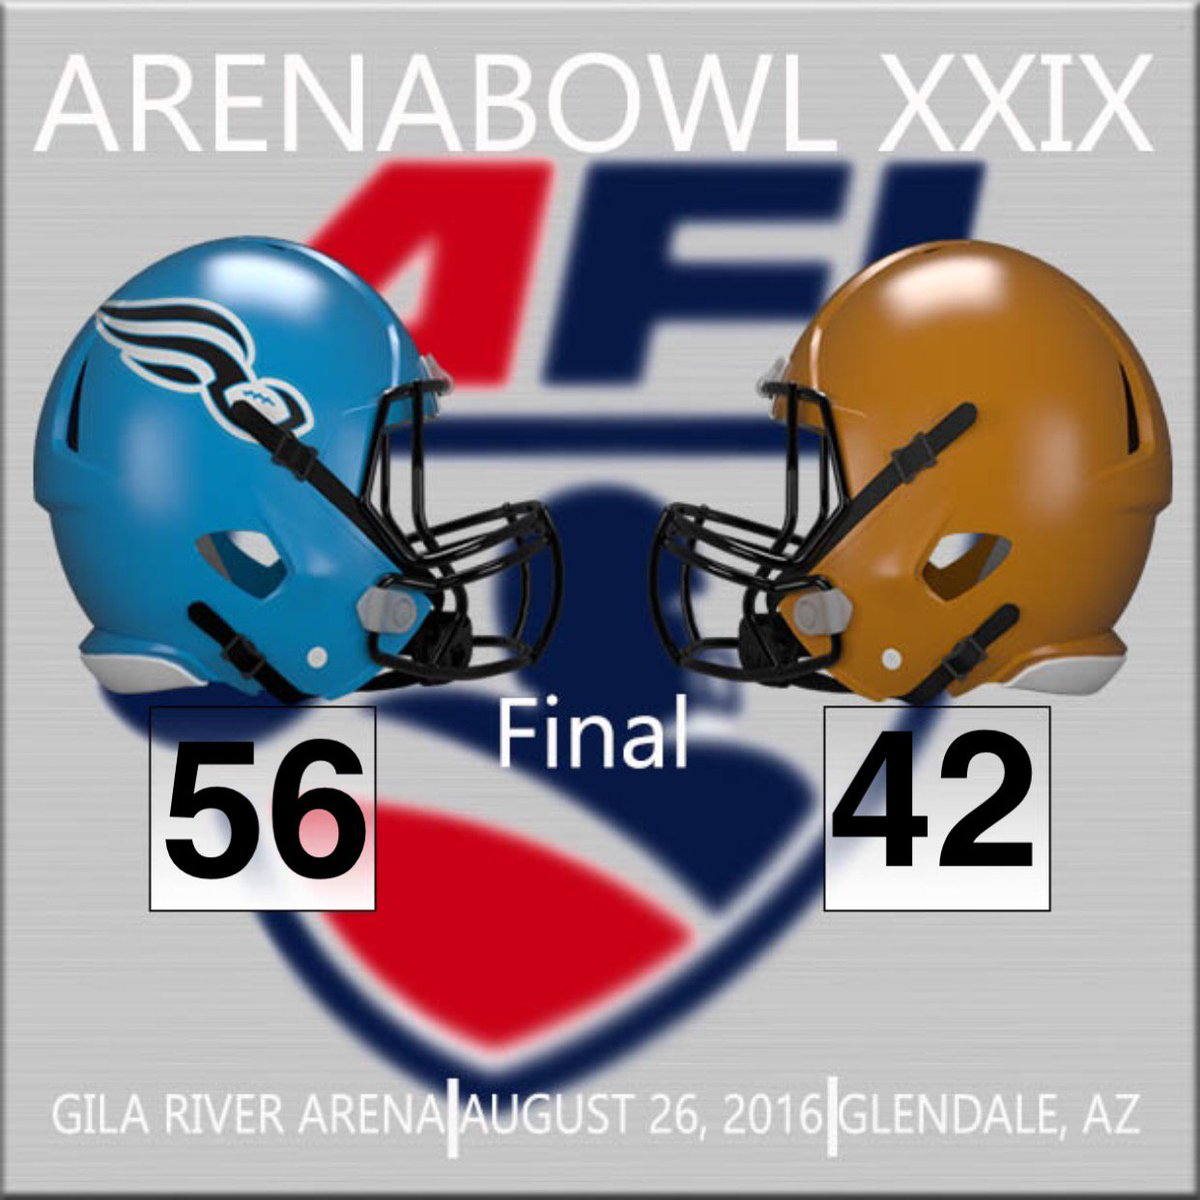 Final in Glendale!! The Philadelphia Soul are the 2016 ArenaBowl Champions!! #ArenaBowlXXIX #AFLonESPN #AFL29 https://t.co/wOV8DdrWzq